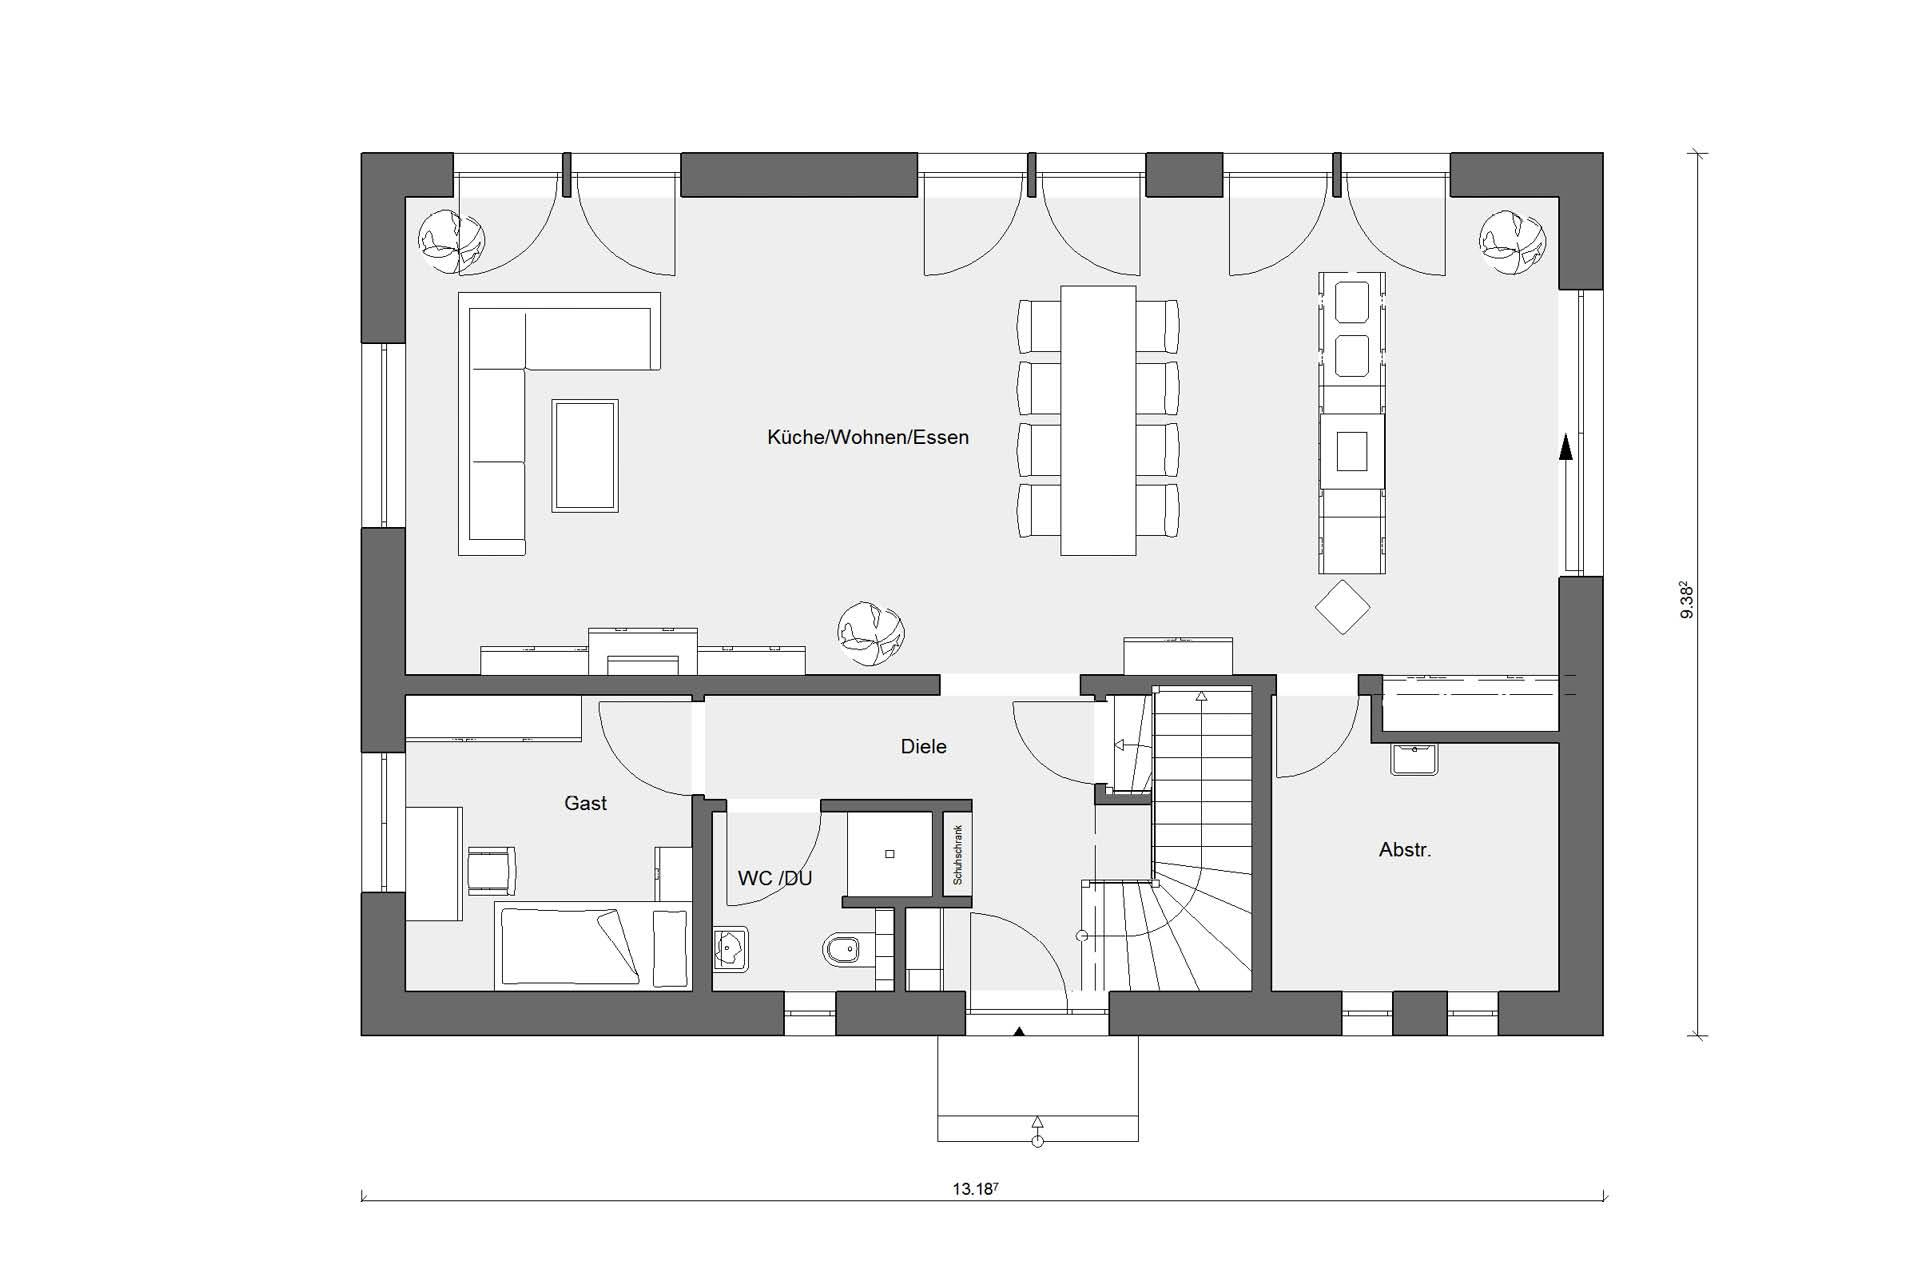 Floor plan ground floor energy-saving house E 20-196.1